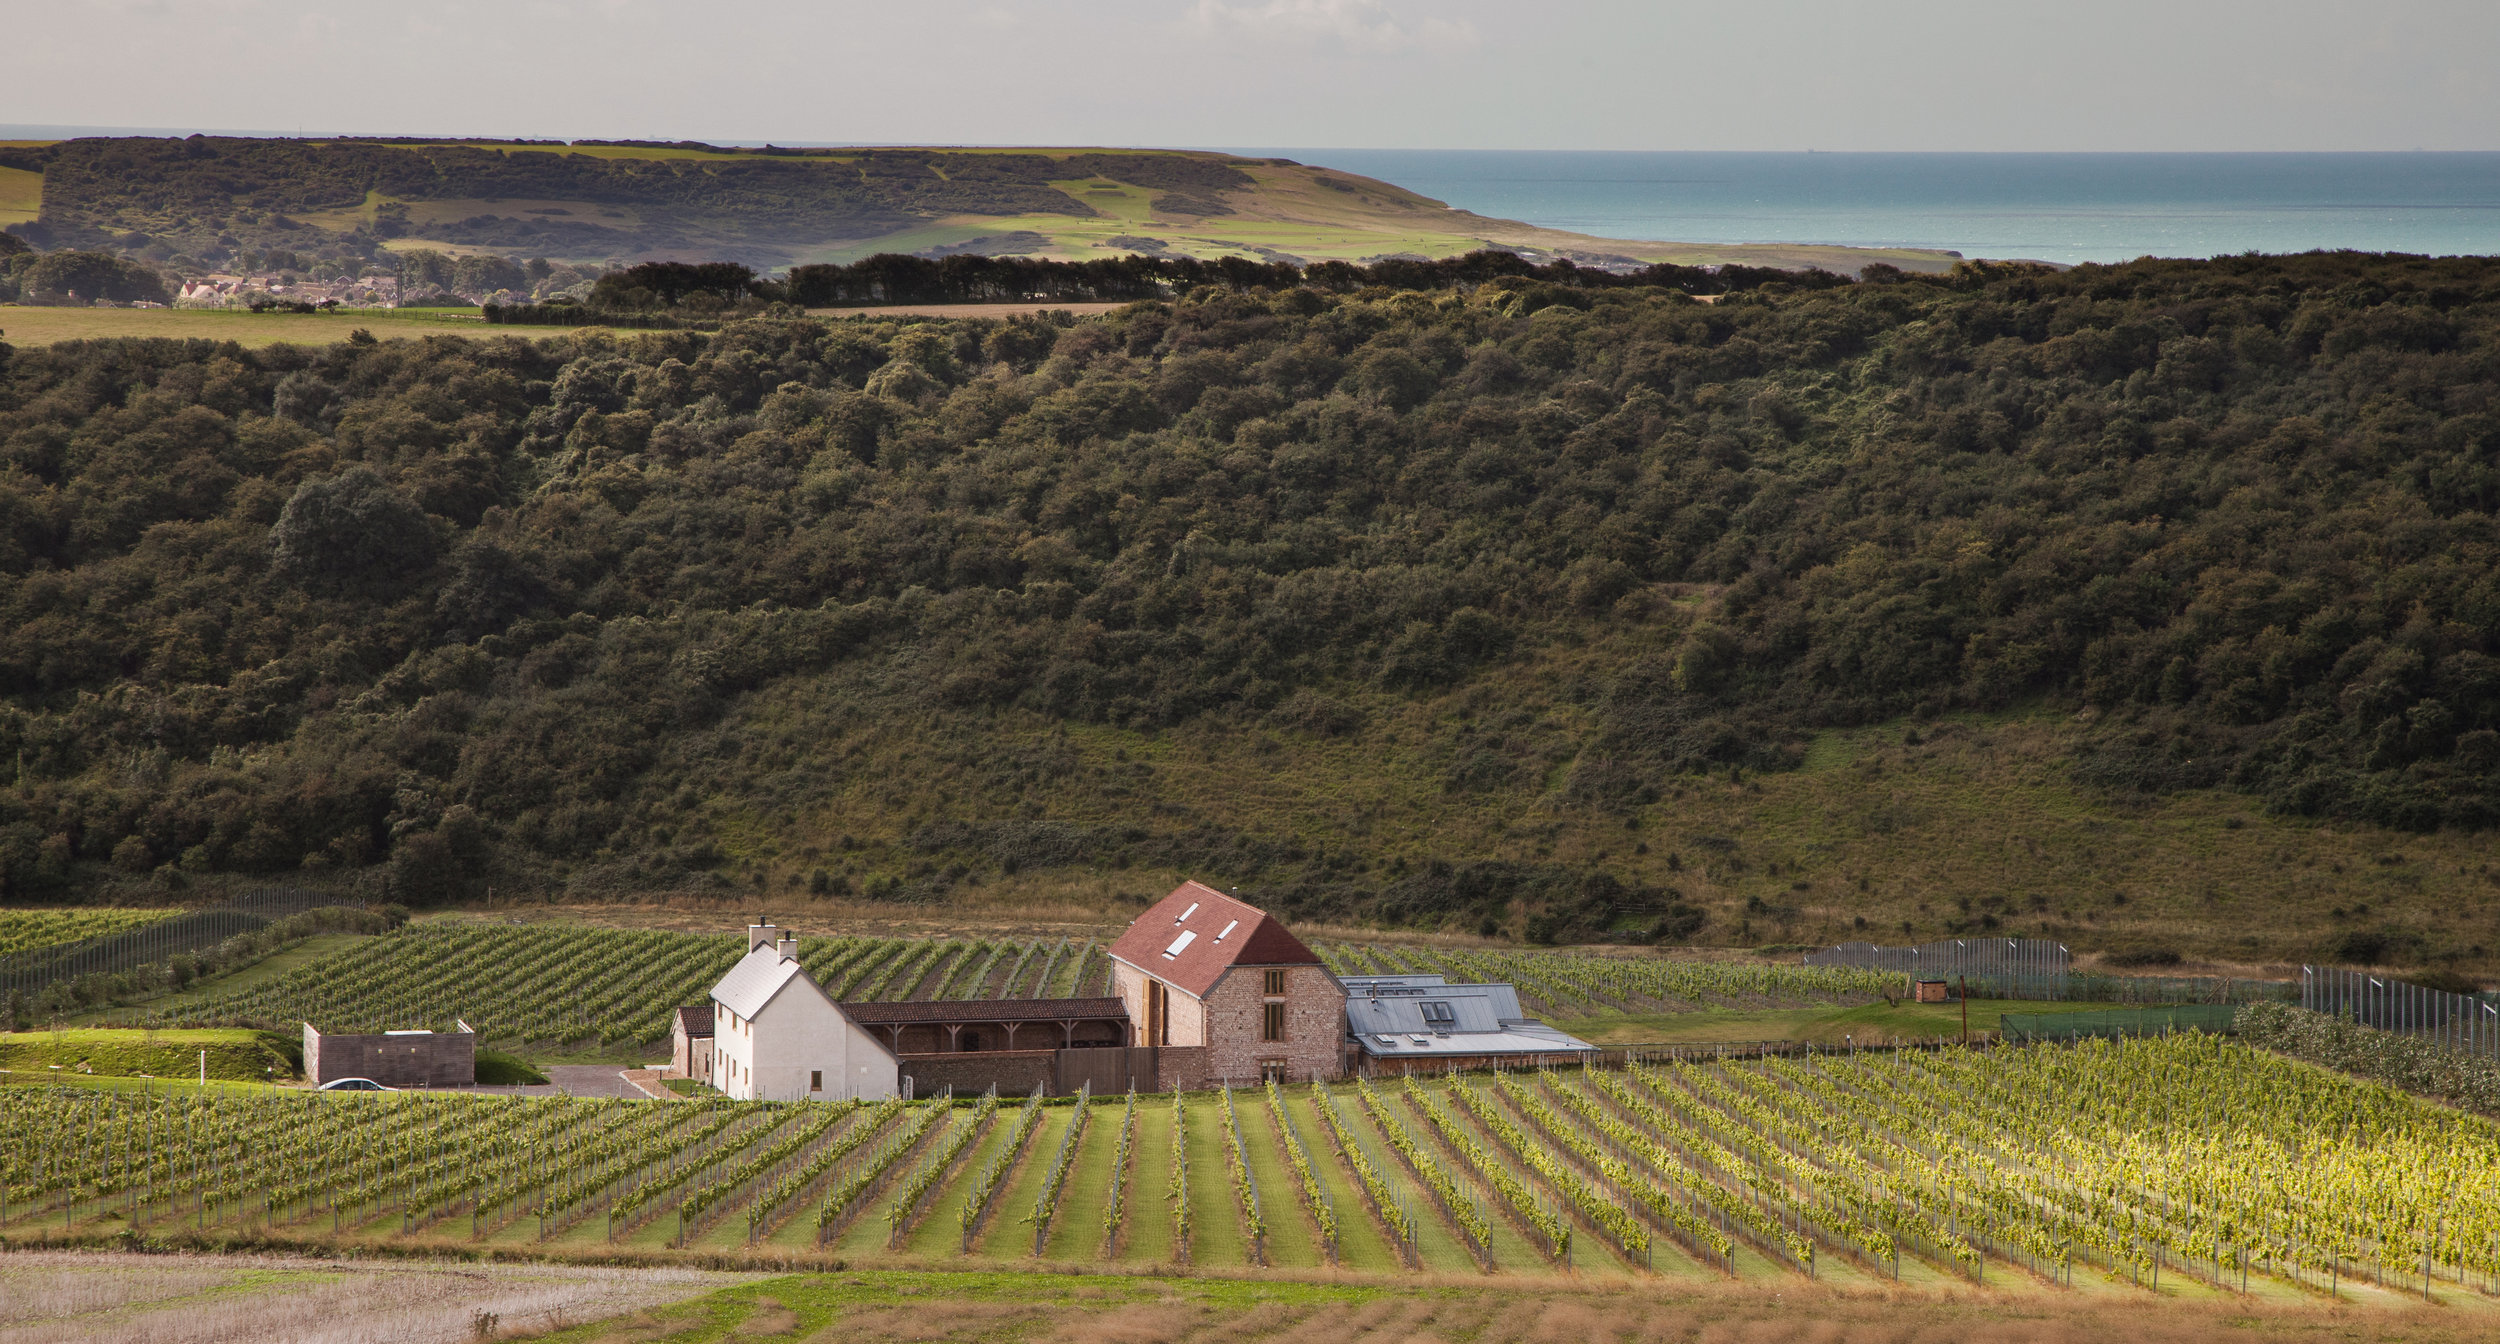 Rathfinny Estate: Vineyards, Flint Barns and English Channel. Photo: Rathfinny Estate